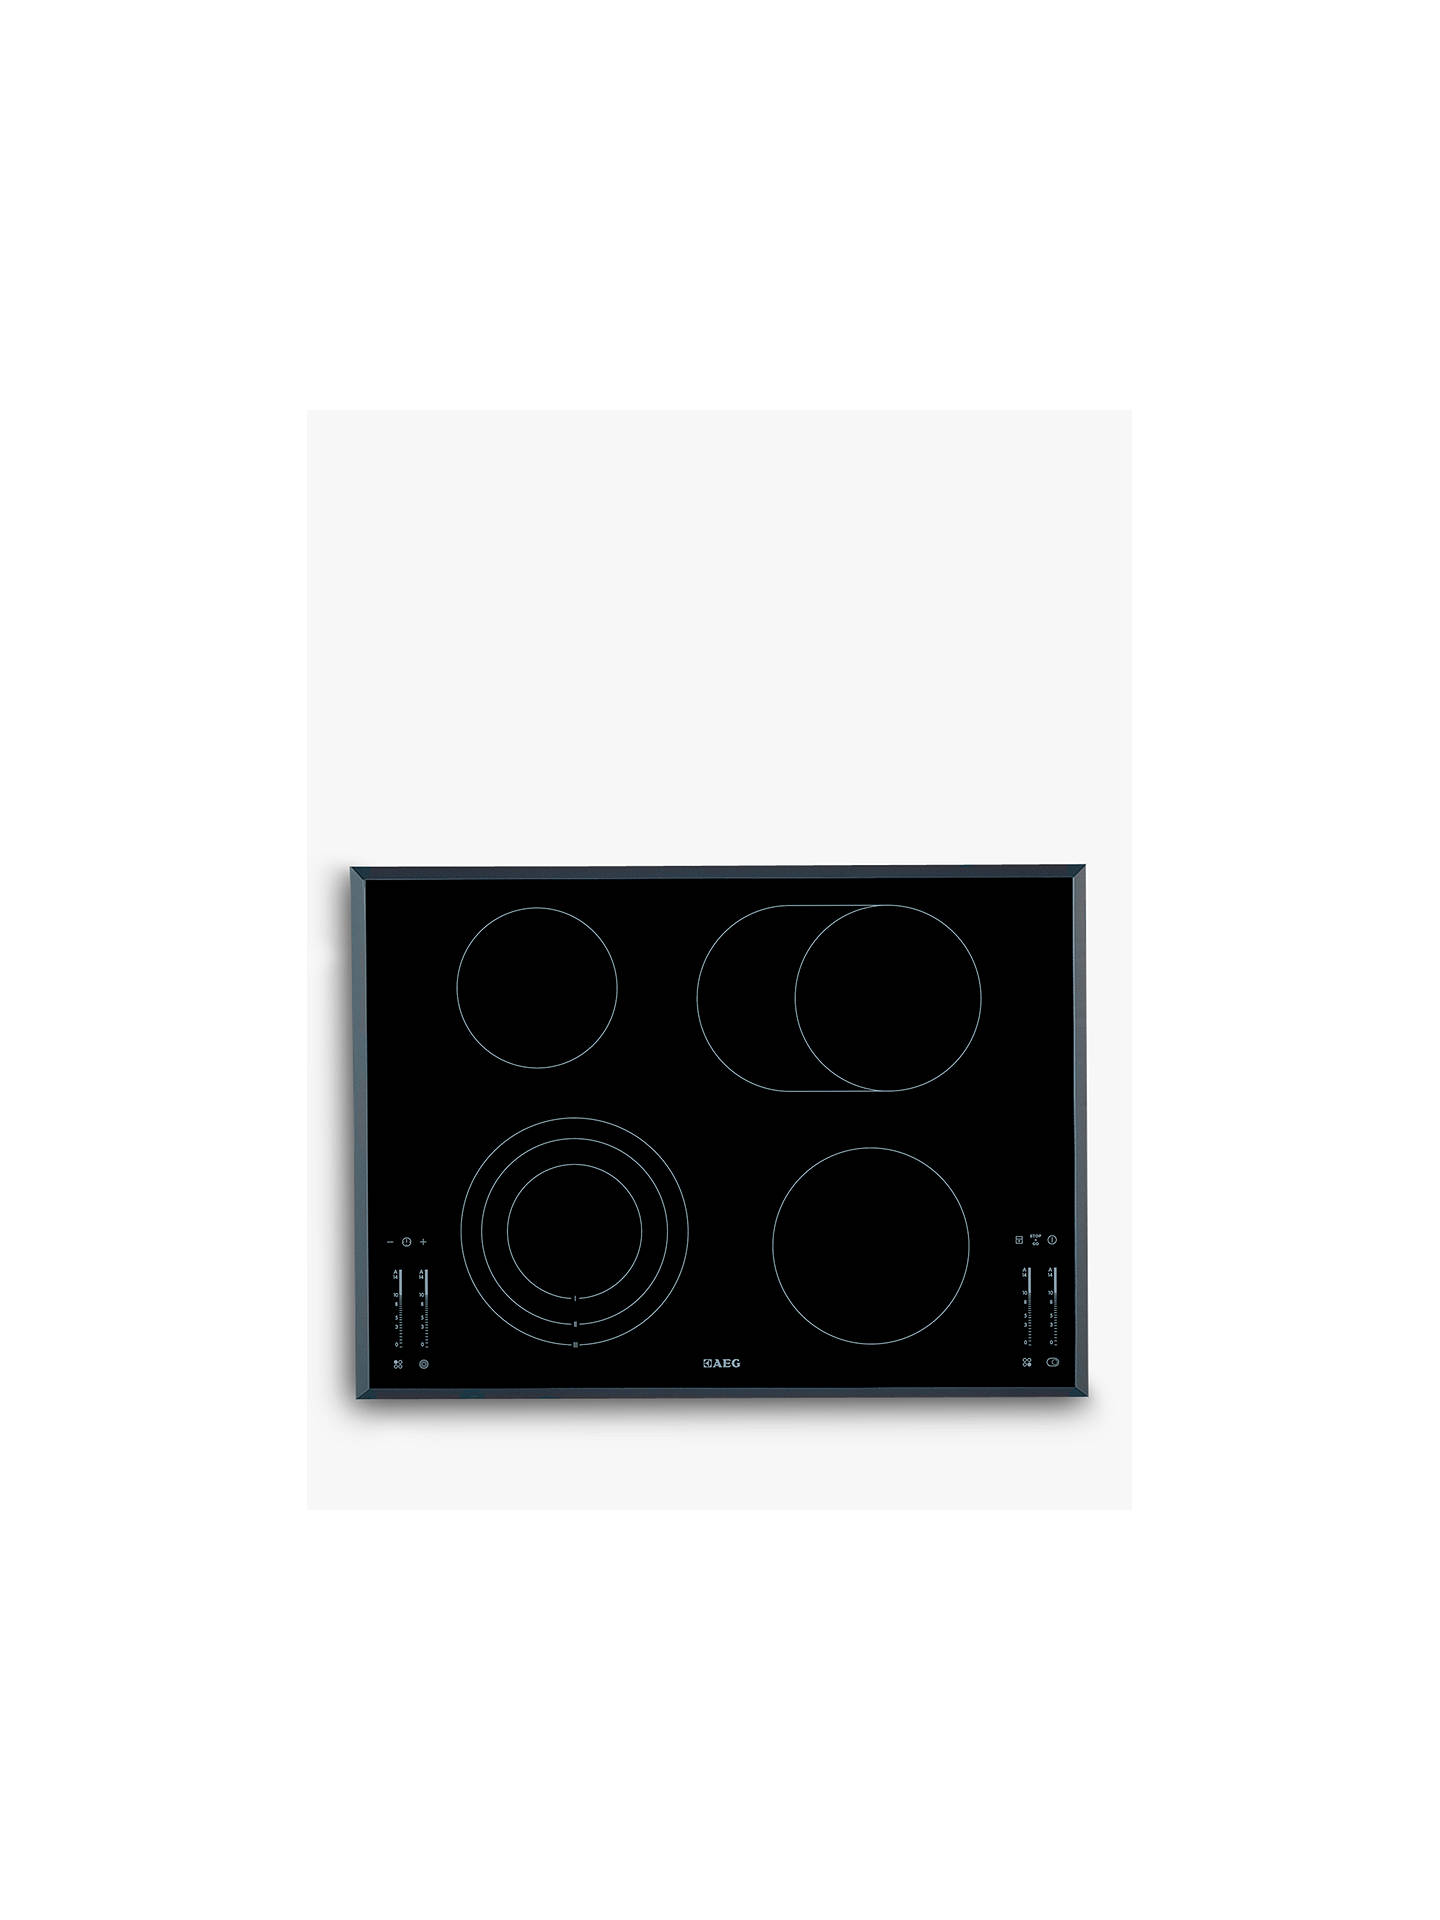 BuyAEG HK764070FB Ceramic Hob Online at johnlewis.com